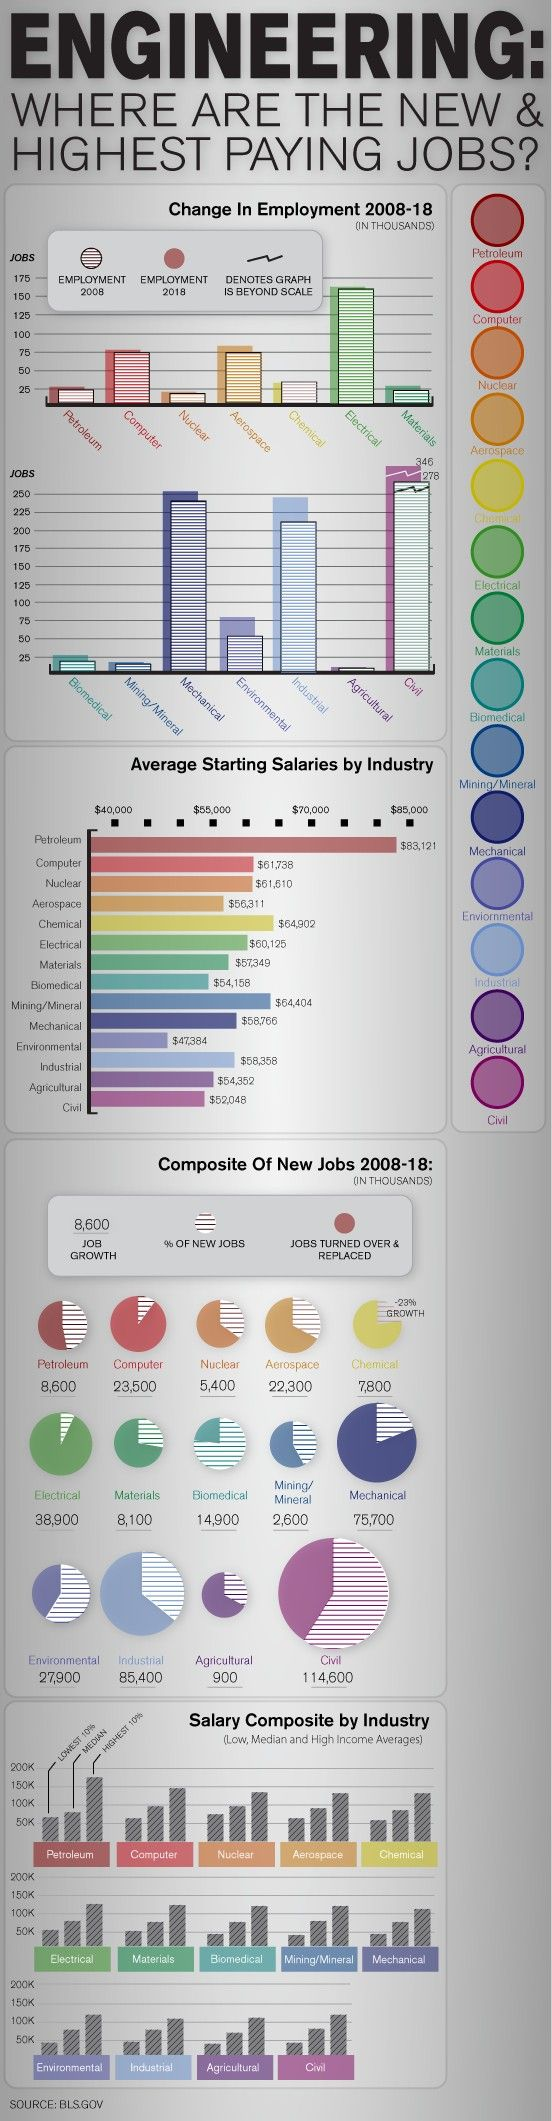 Engineering Jobs and Salary Outlook GlobalSpec Insights